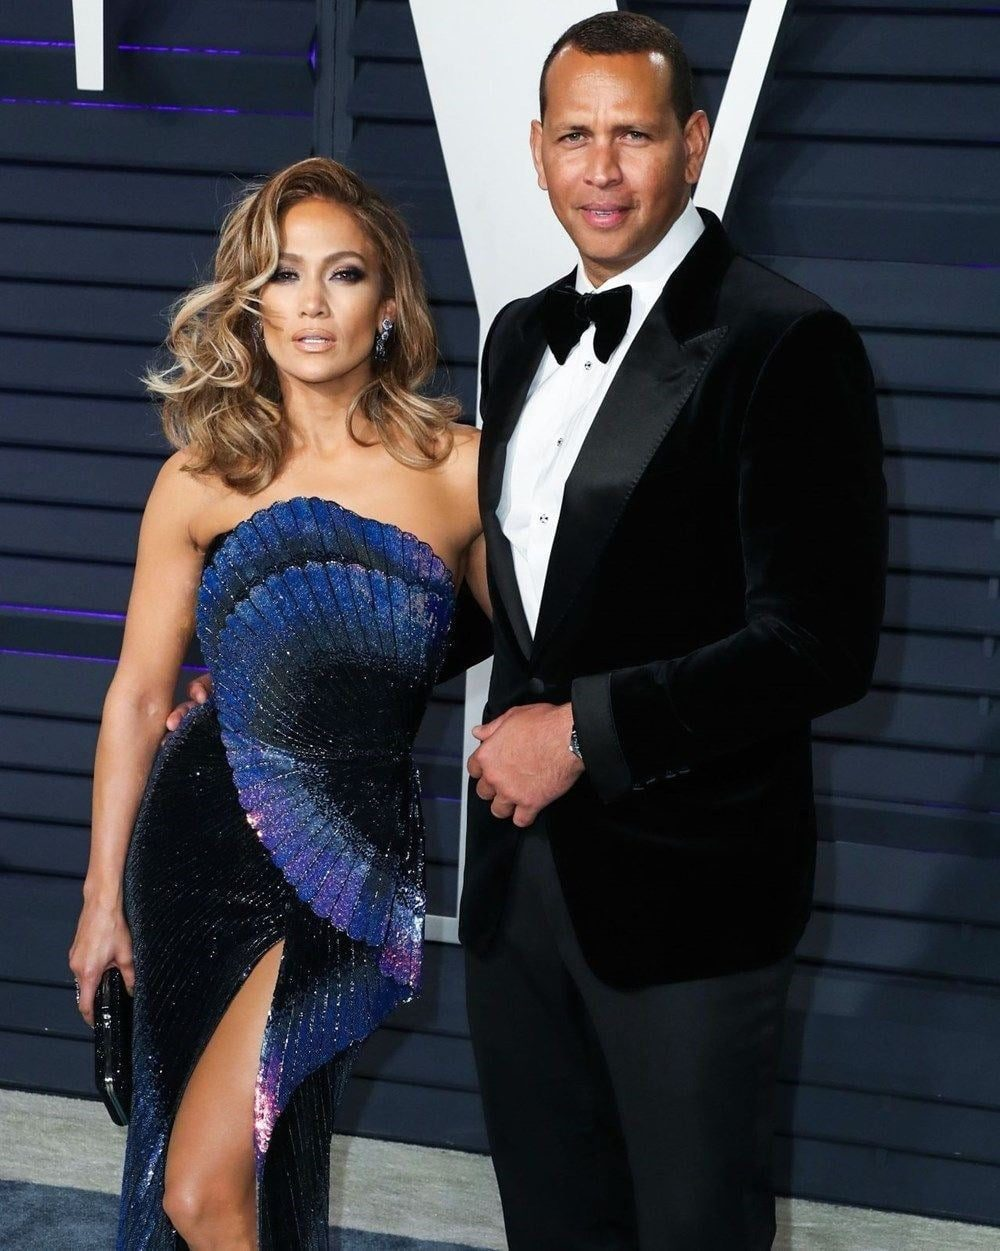 Jennifer Lopez has been reported to the police repeatedly 4